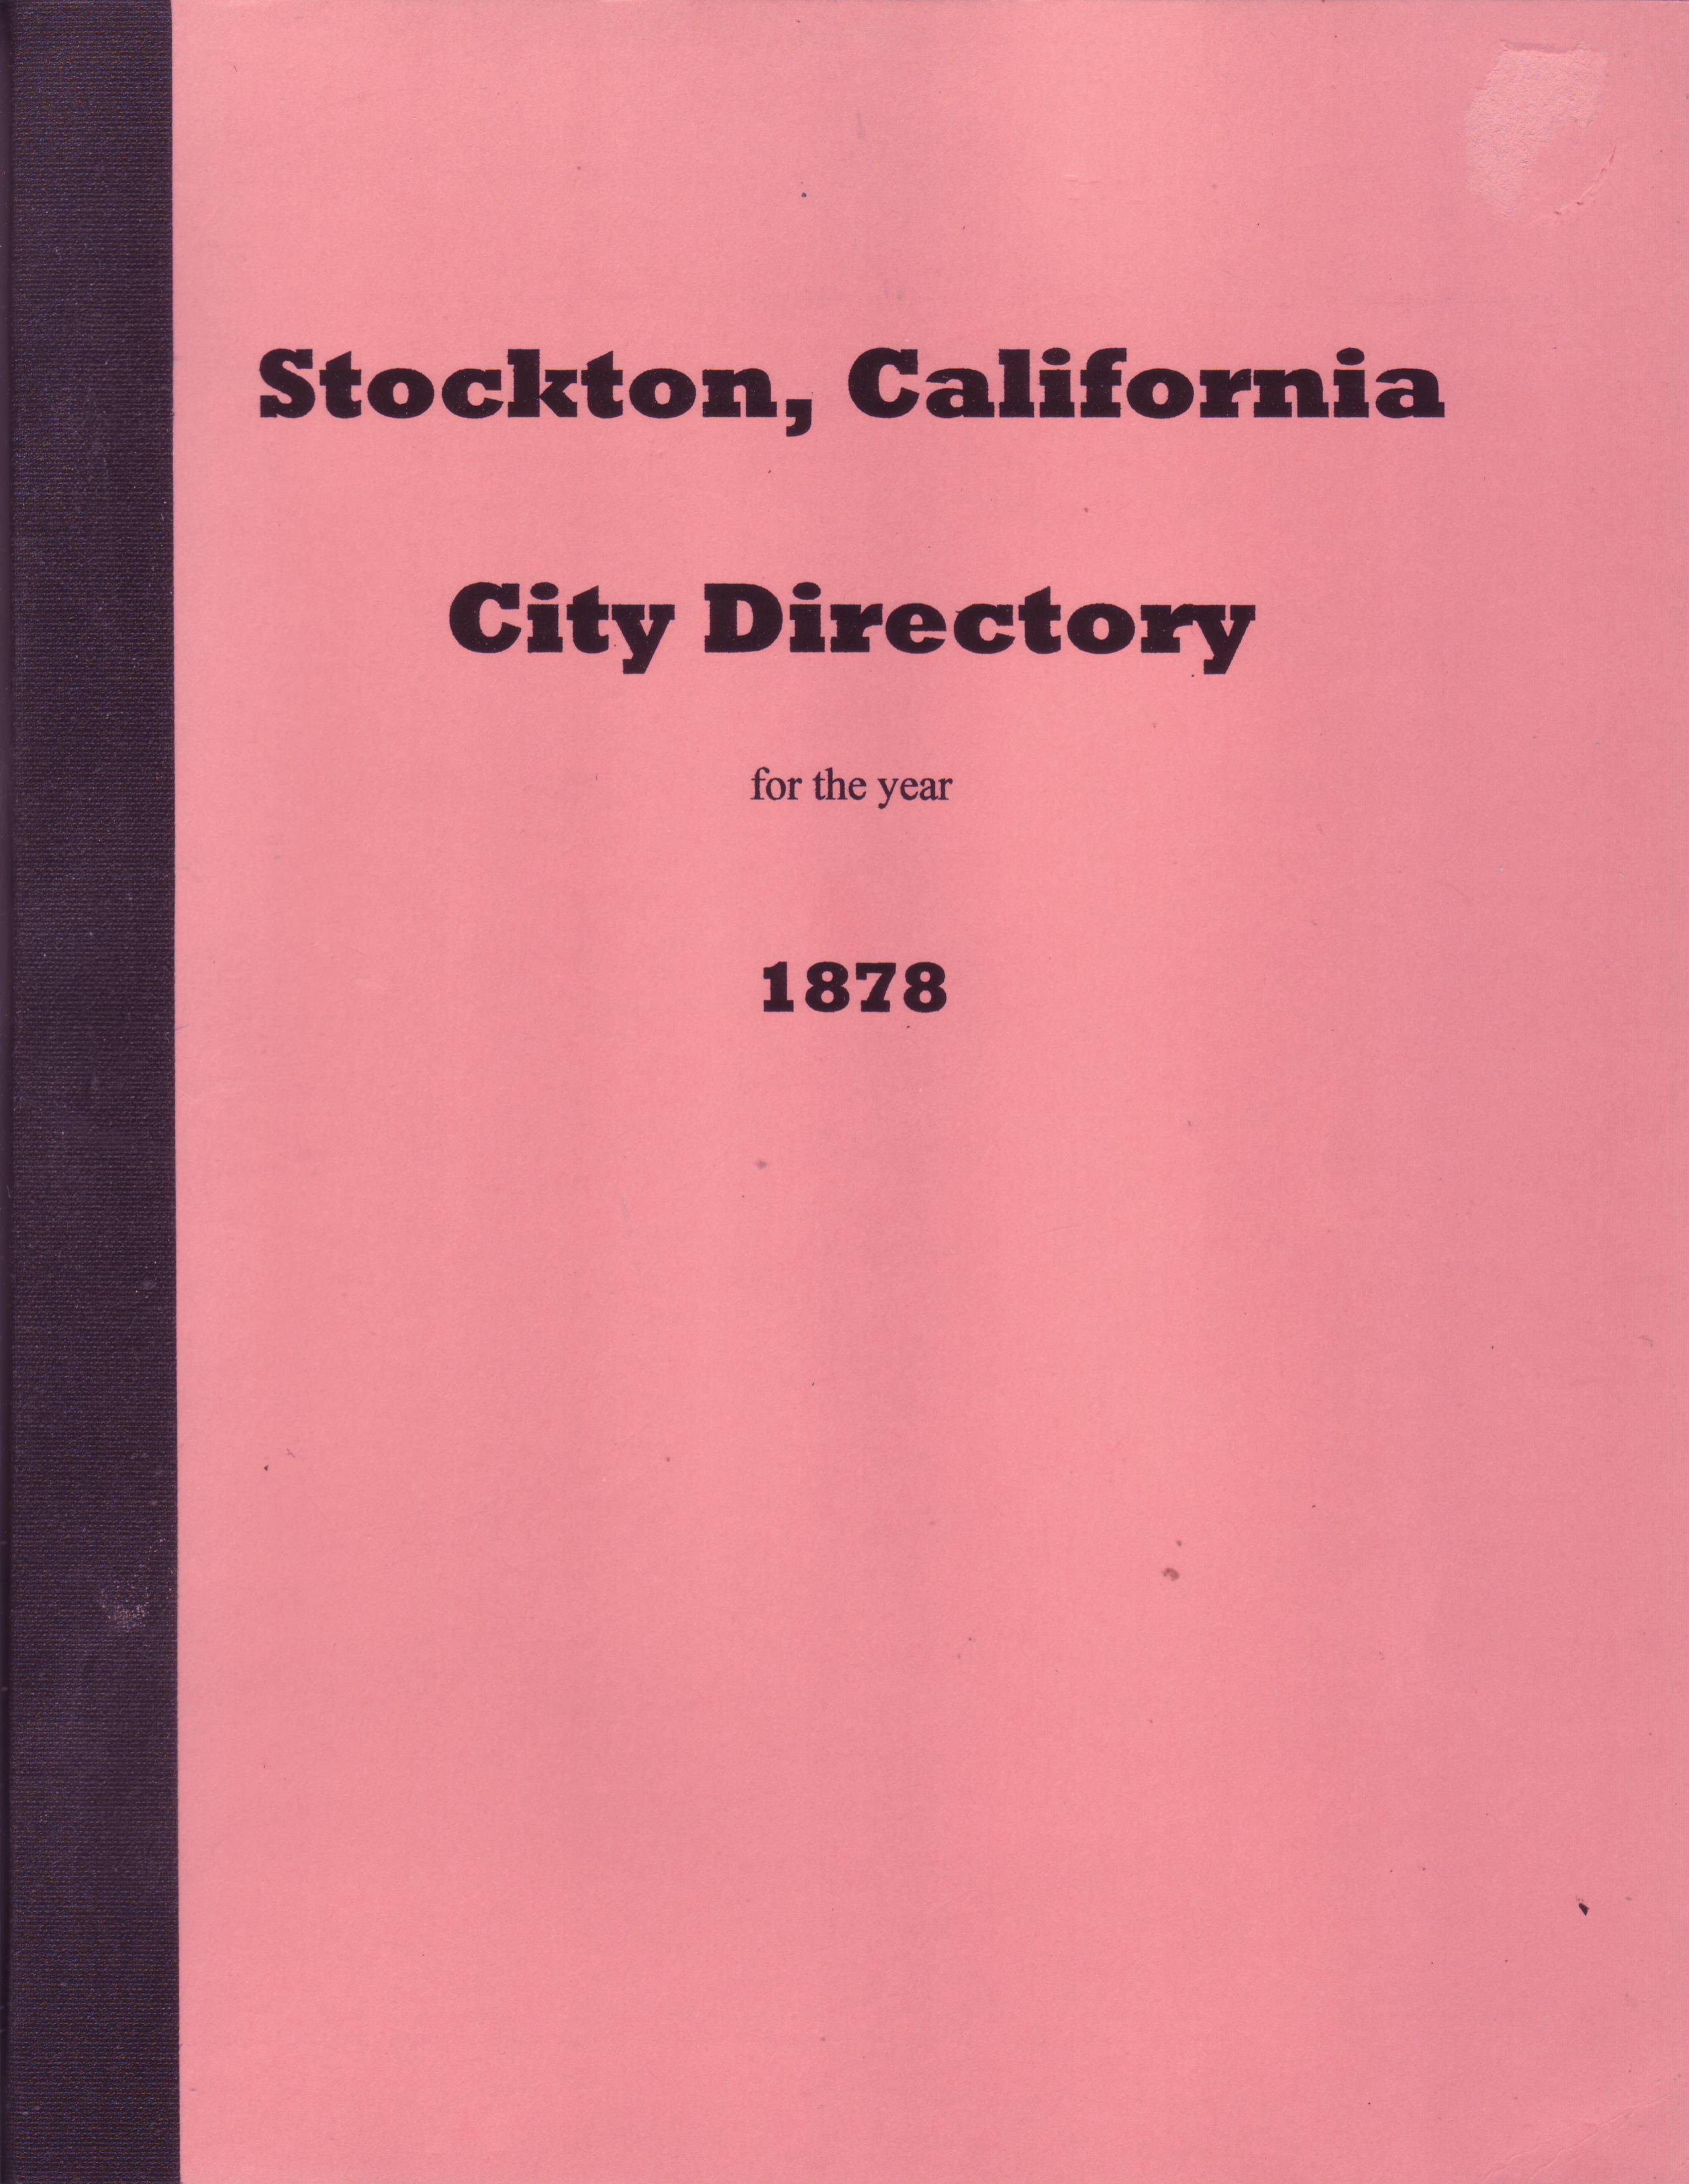 Stockton, California City Directory 1878